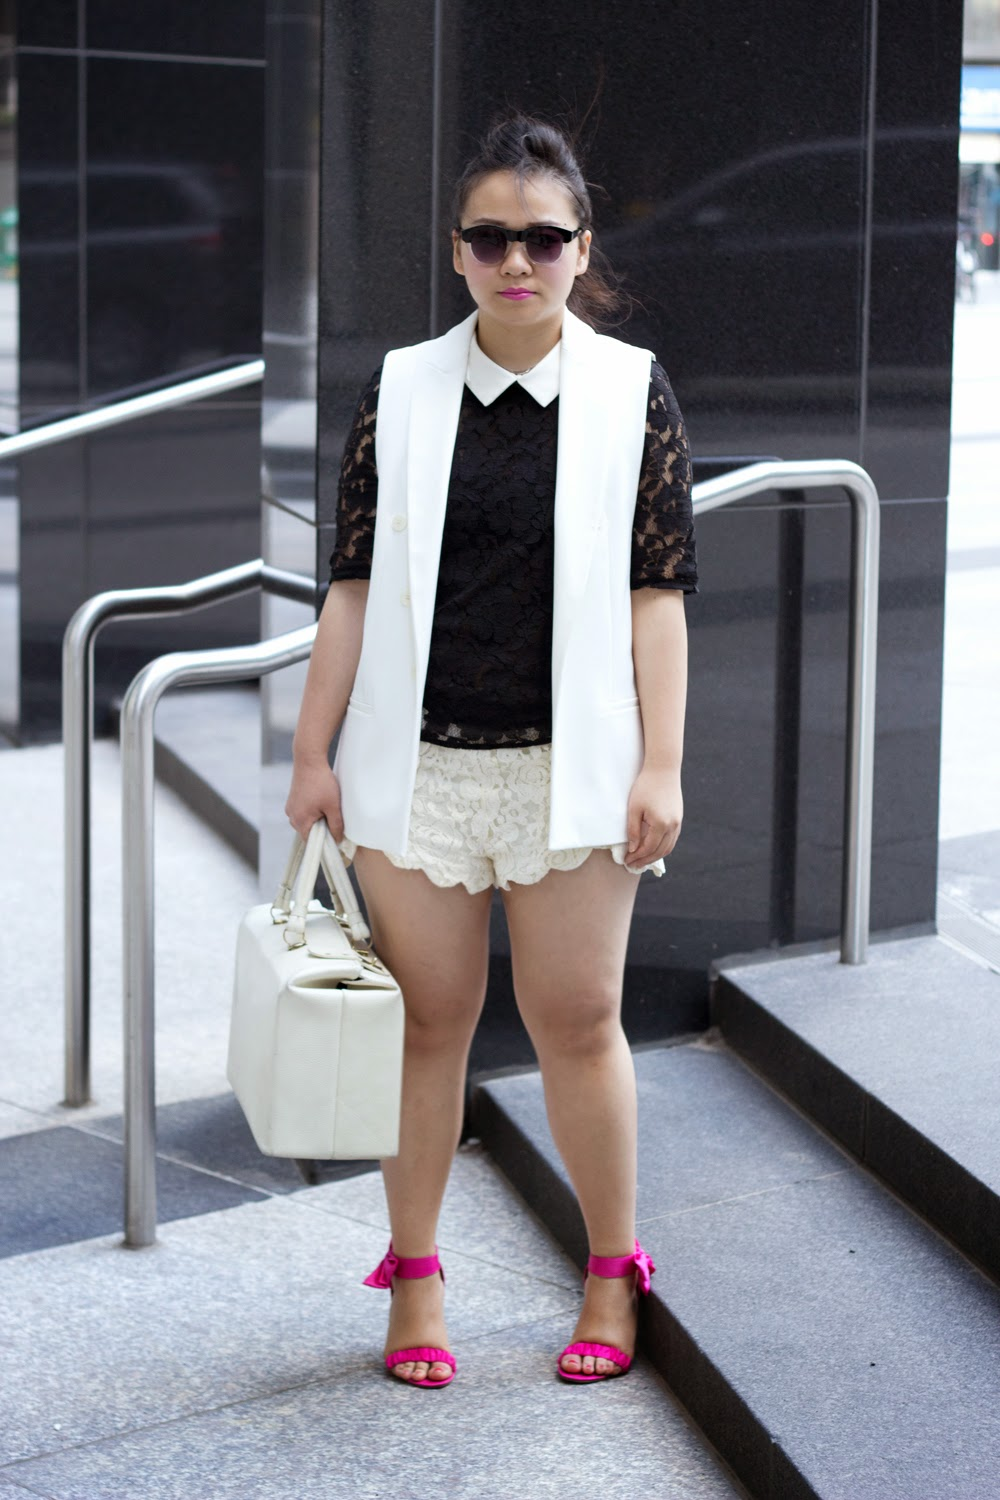 lace-on-lace-spring-look, black-and-white, zara-sleeveless-blazer, lace-top-with-collar